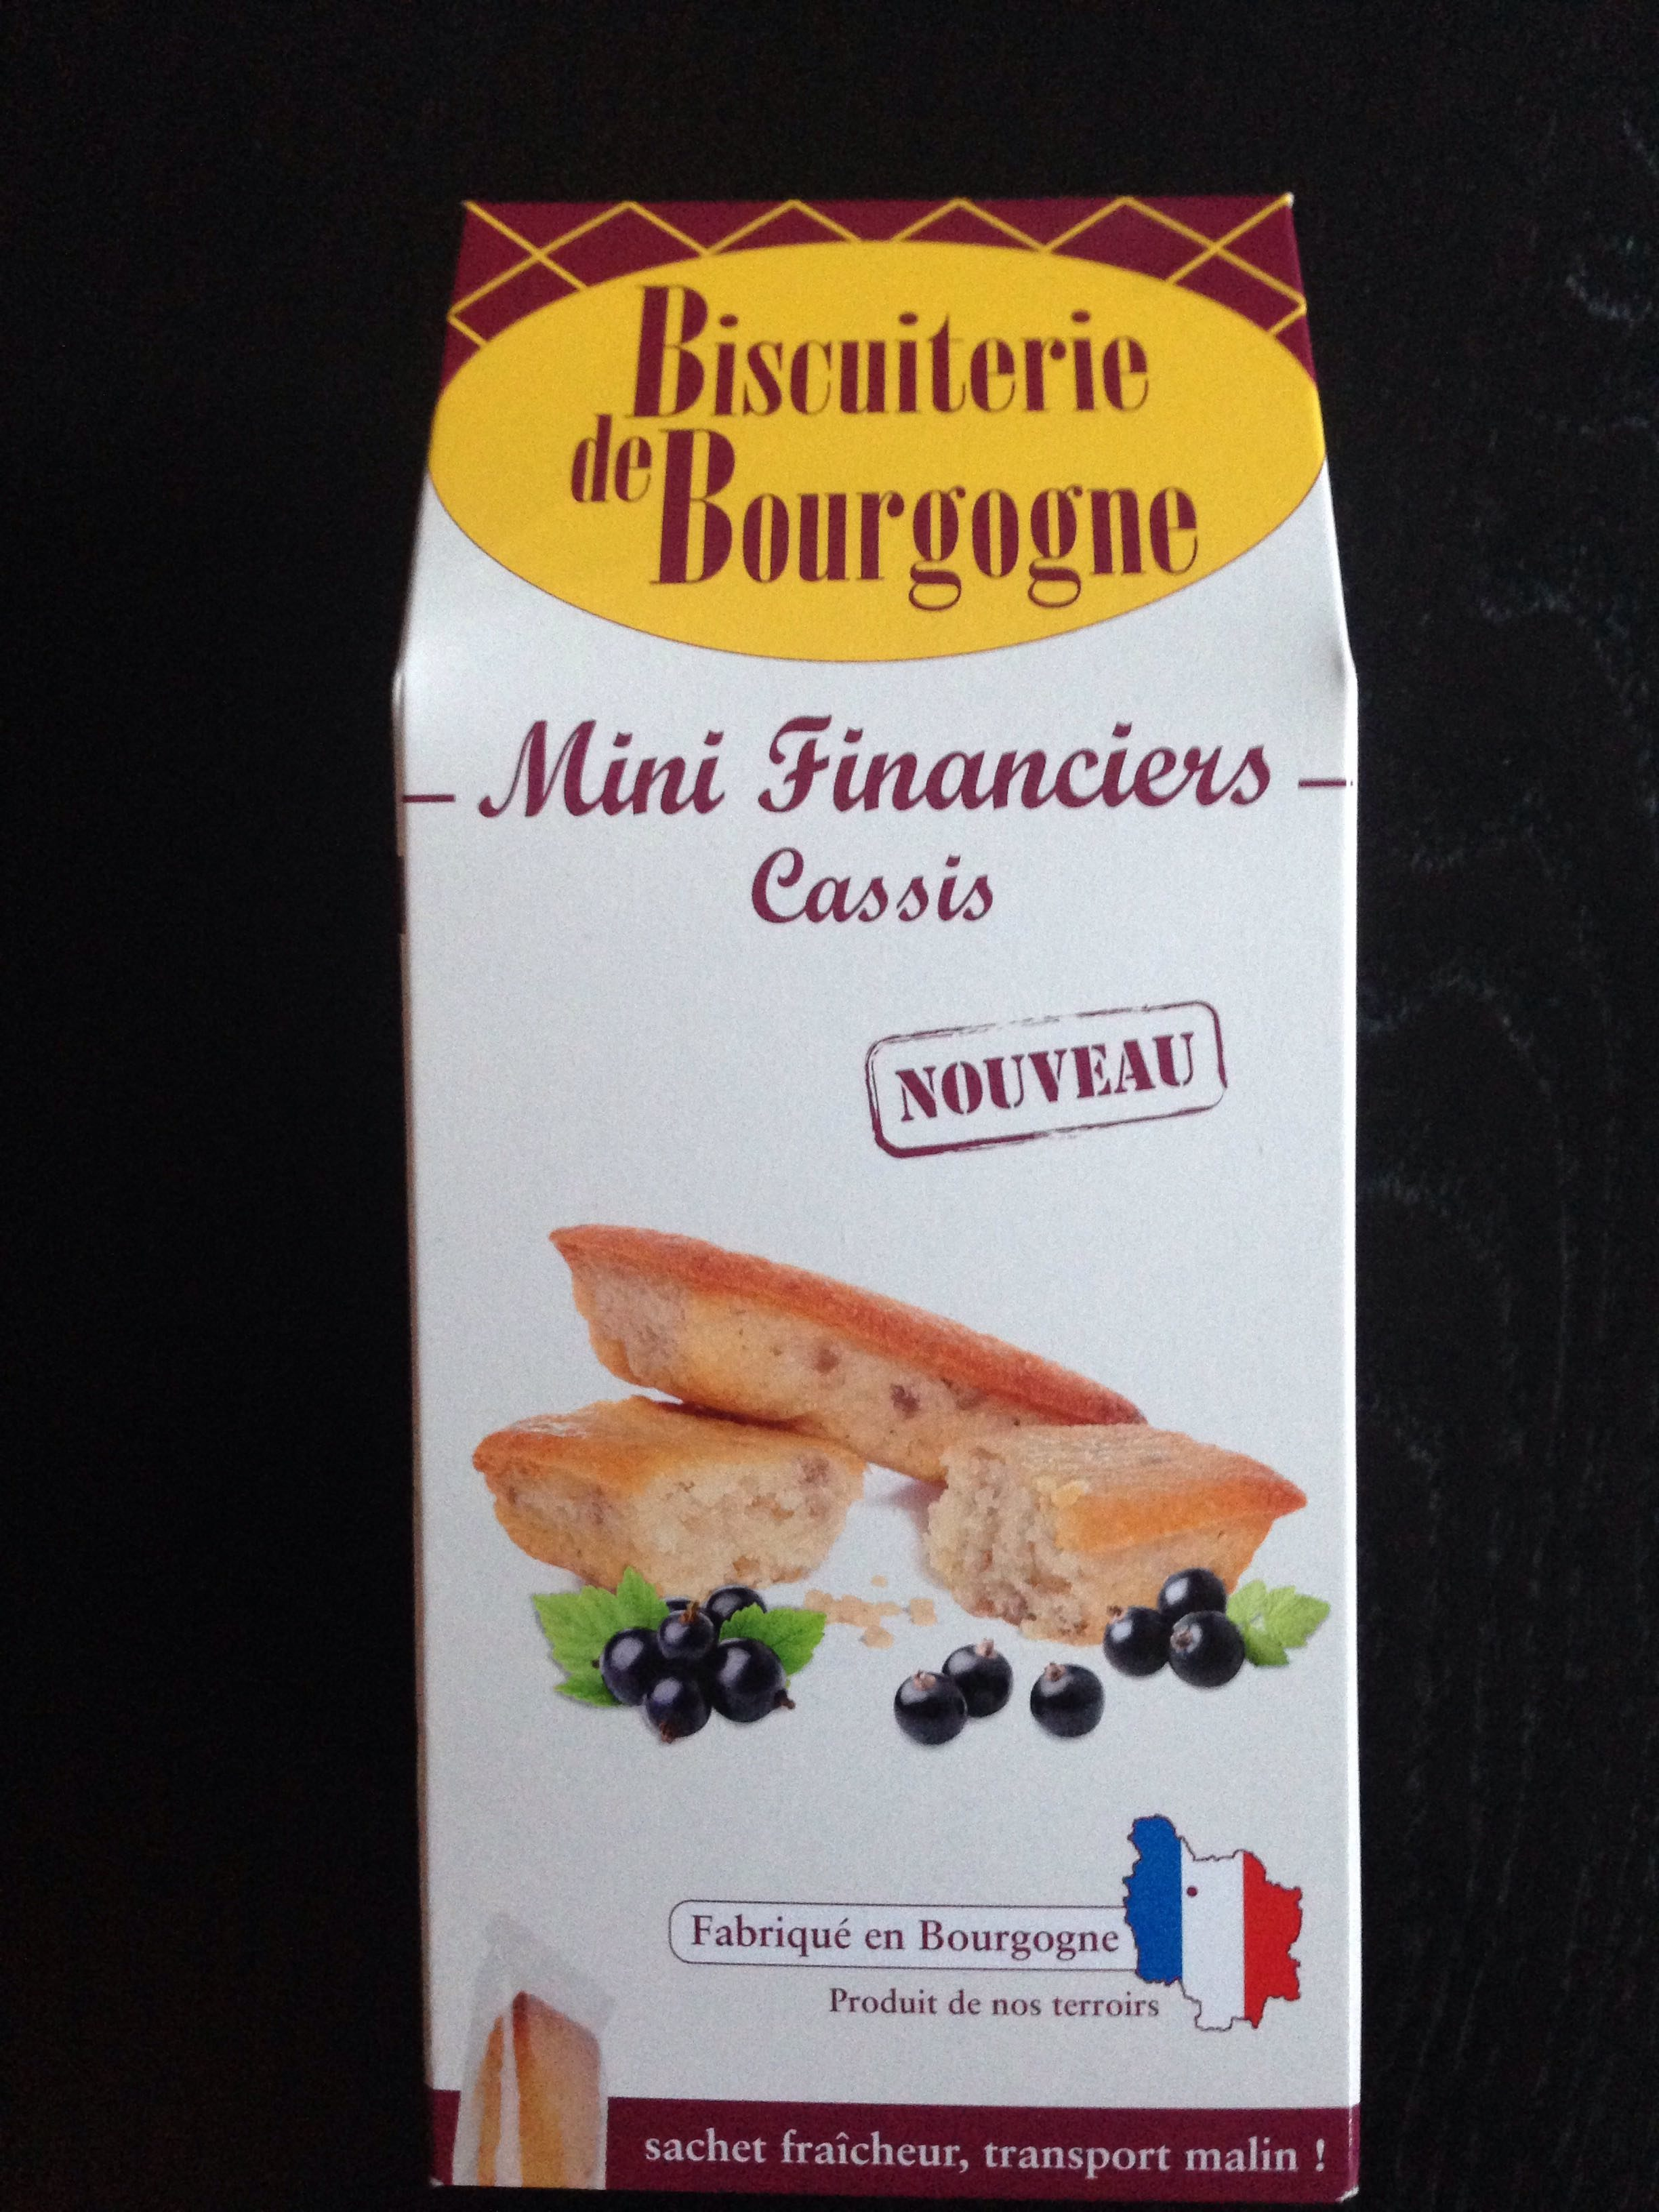 Mini financiers casis - Produit - fr